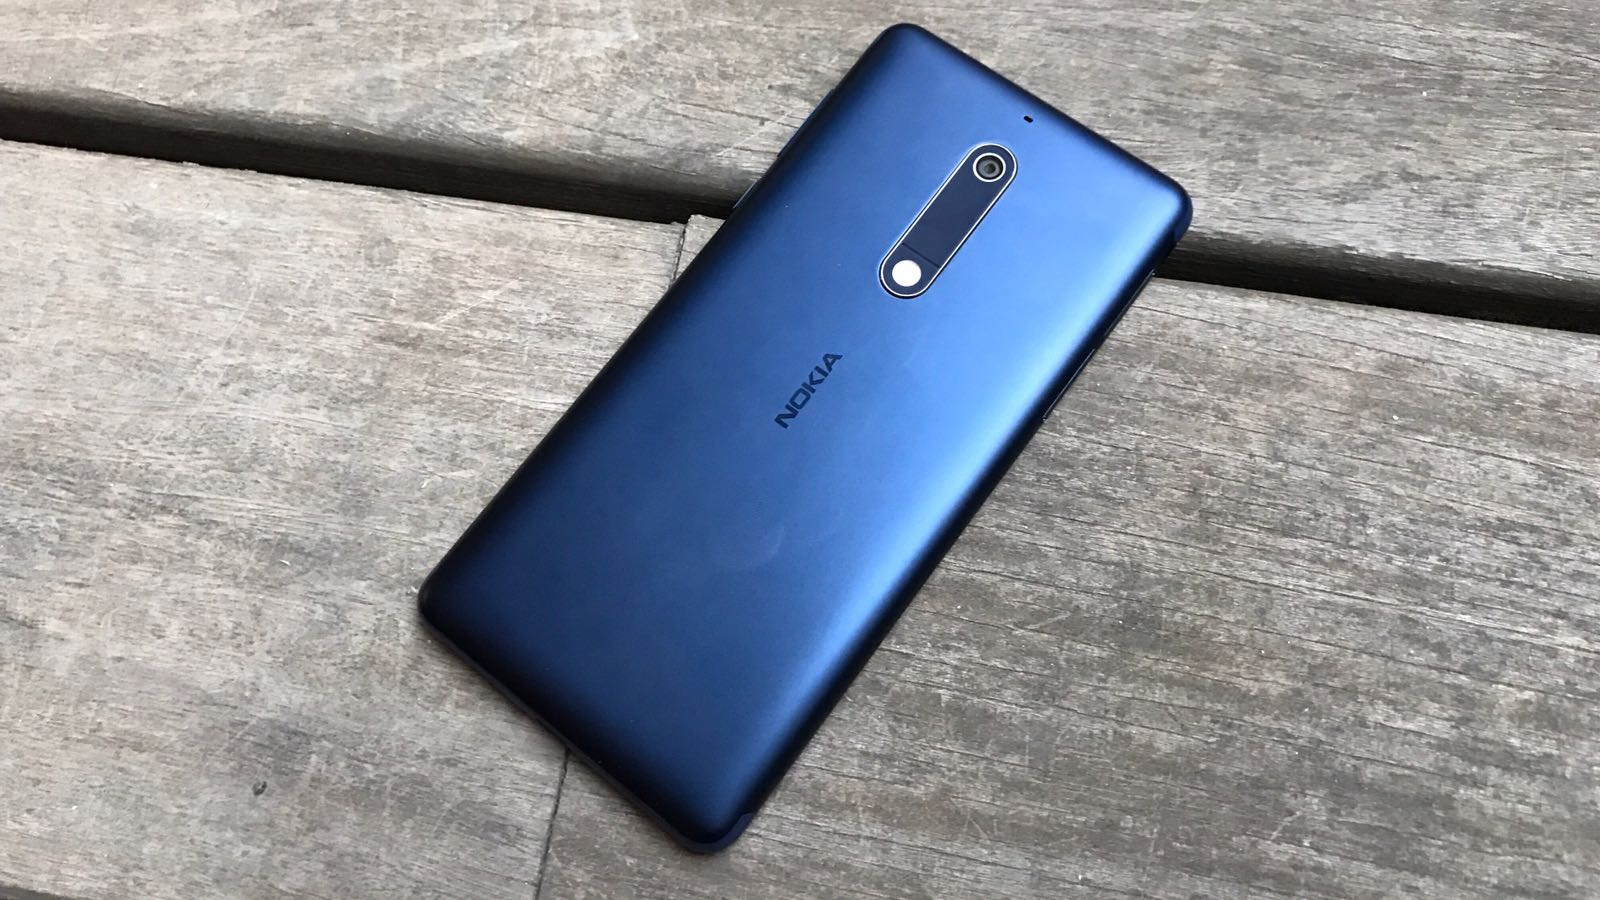 Nokia 5 in Pictures